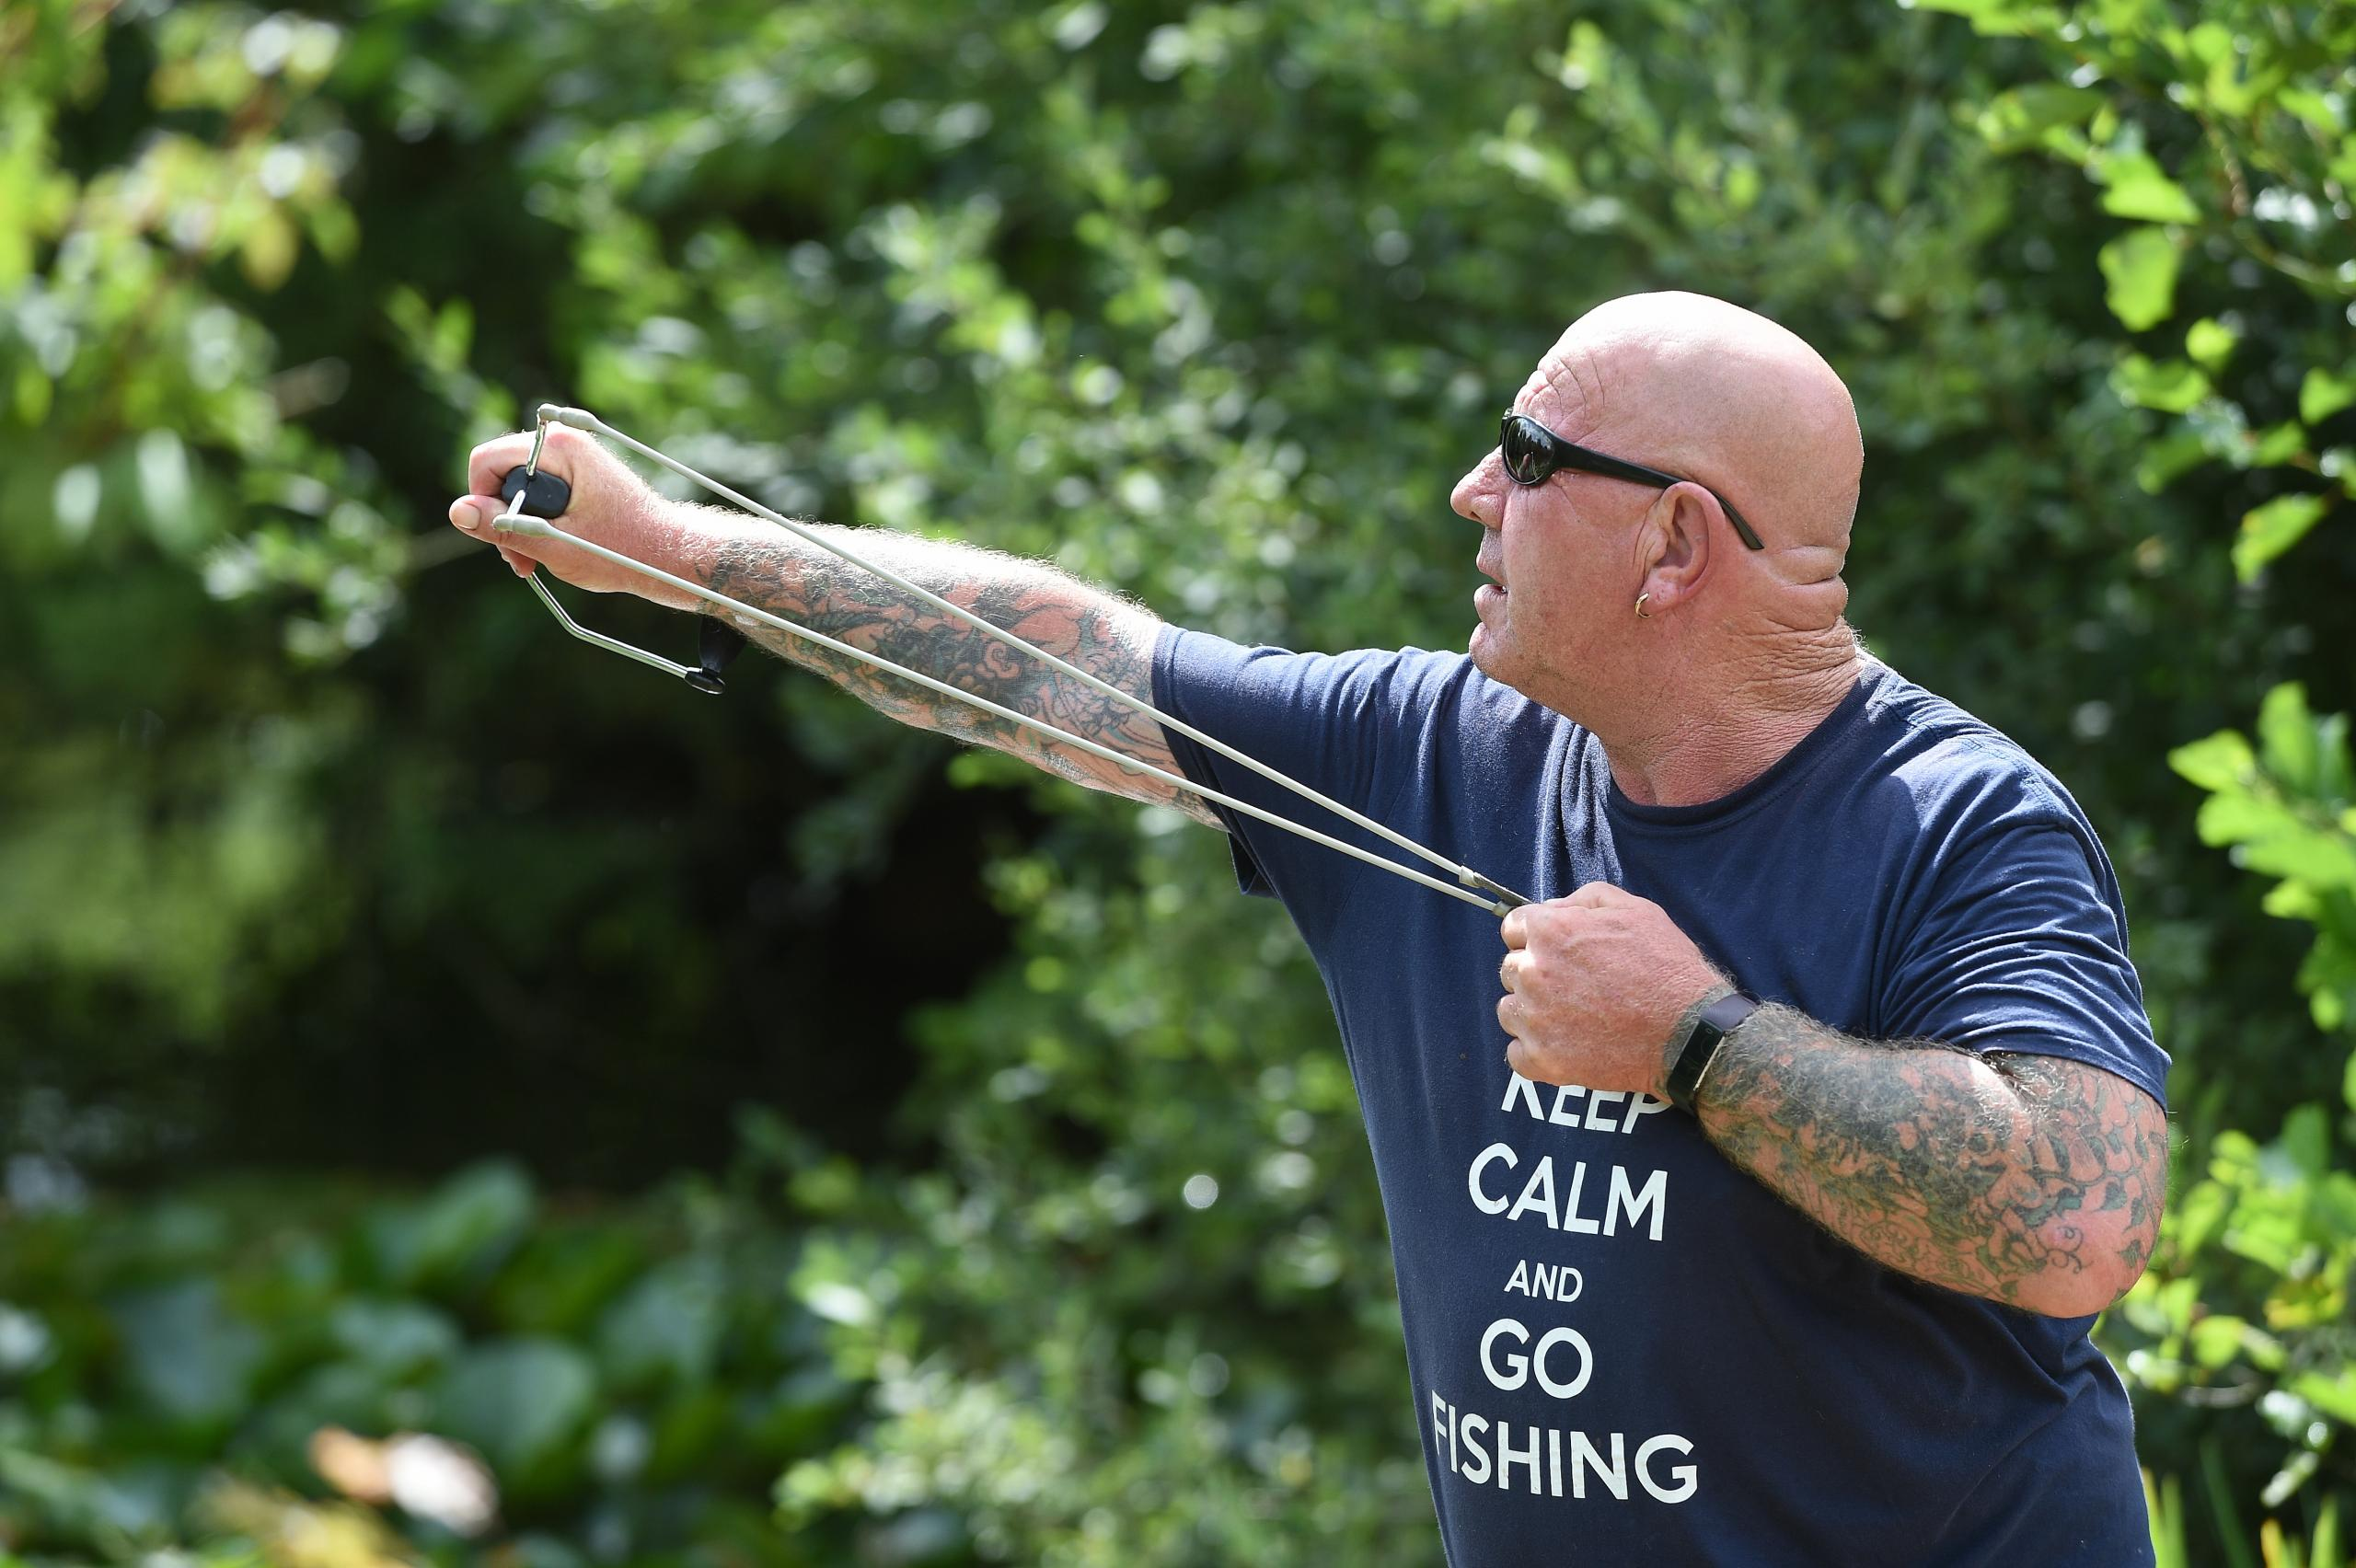 Ron 'Rocket' Sant takes part in the Anderson charity fishathon